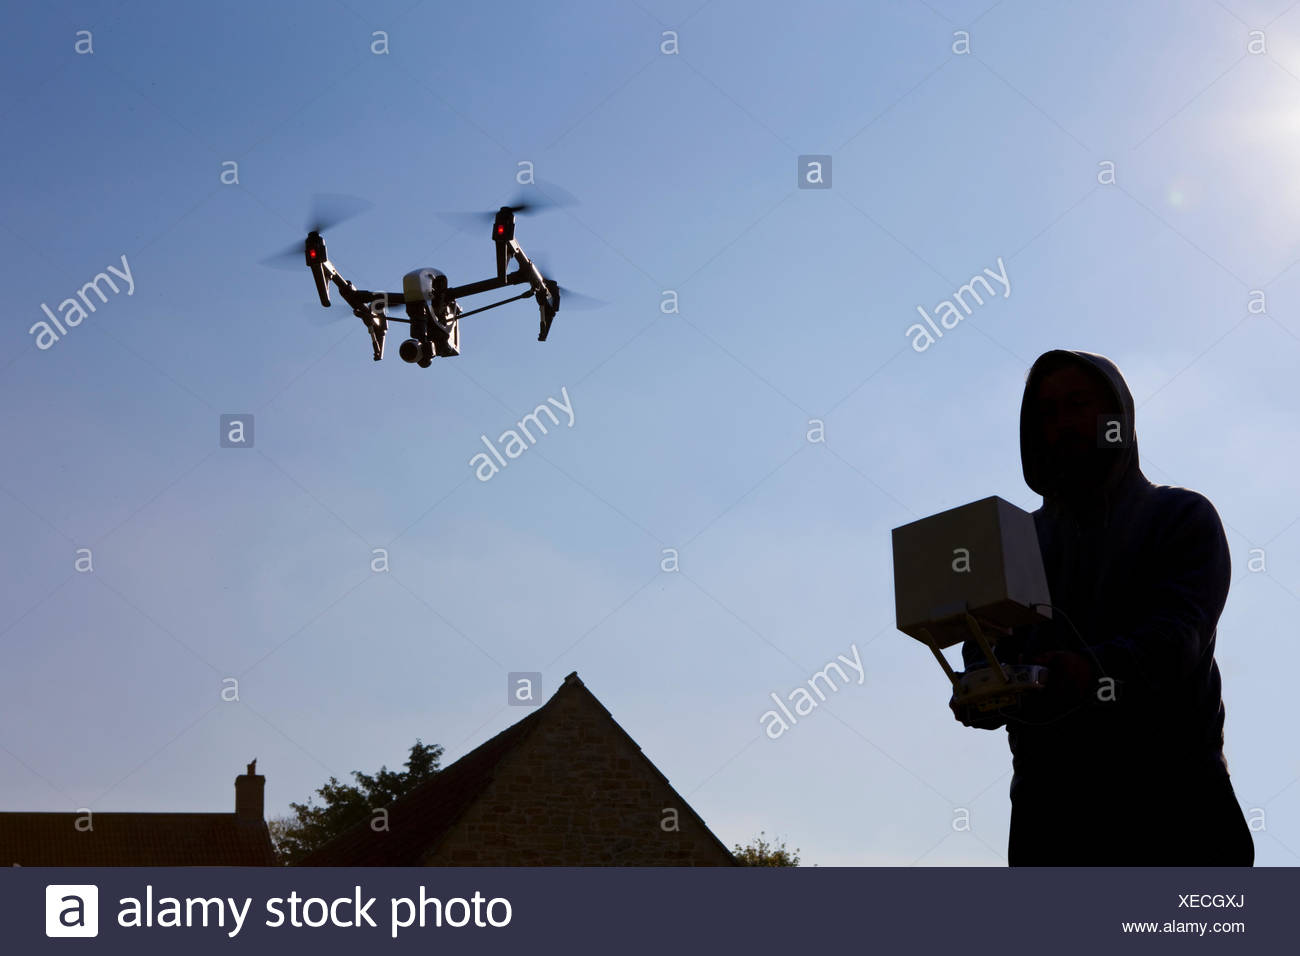 Man operating surveillance drone in blue sky - Stock Image